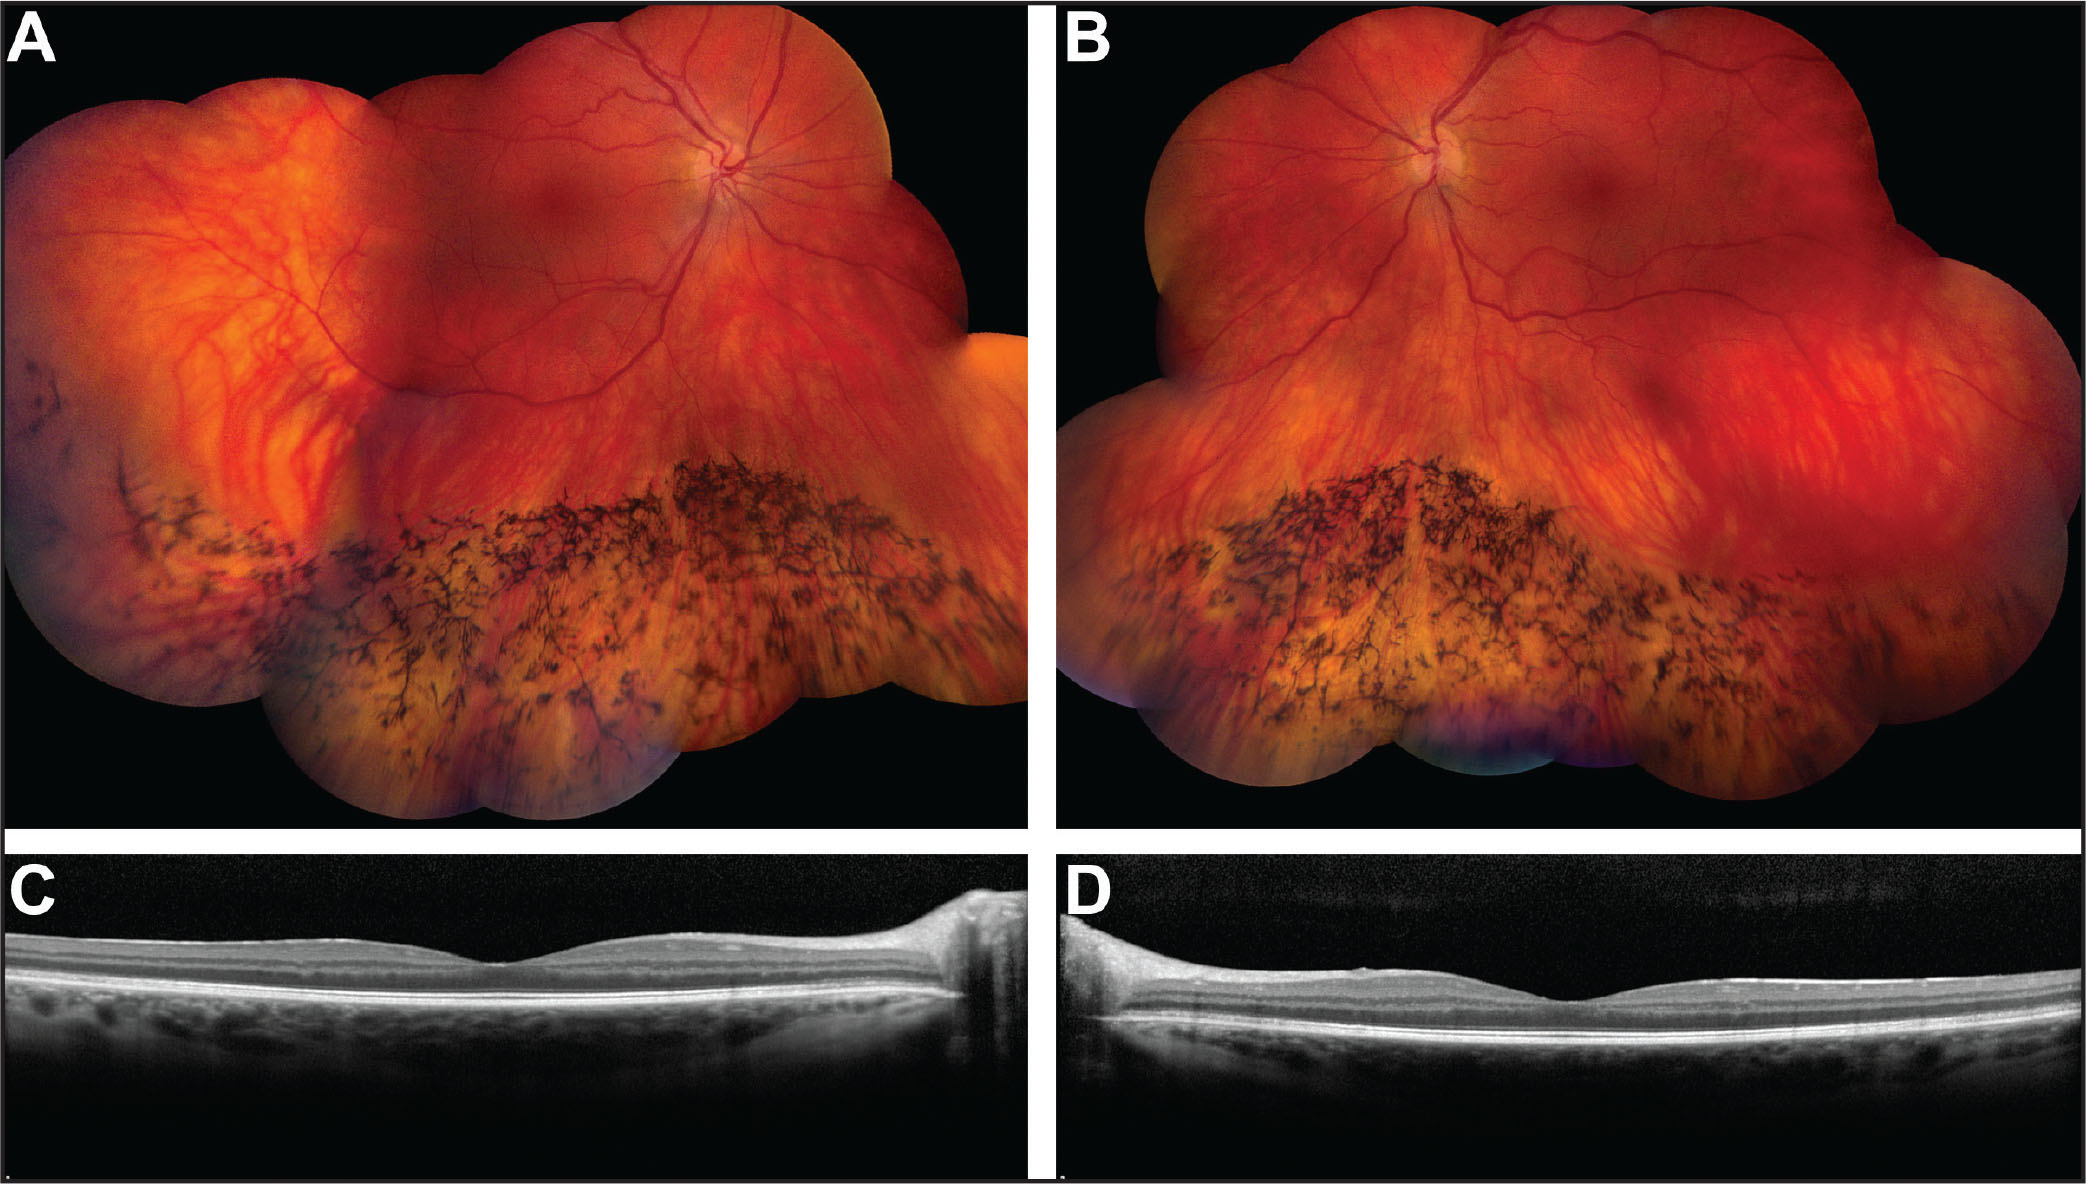 Color montage of the right (A) and left (B) eyes showing bone spicule pigmentary changes in the inferior periphery. The right eye is slightly worse than the left. Spectral-domain optical coherence tomography horizontal line scans through the fovea of the right (C) and the left (D) eyes showing normal foveal profiles bilaterally.